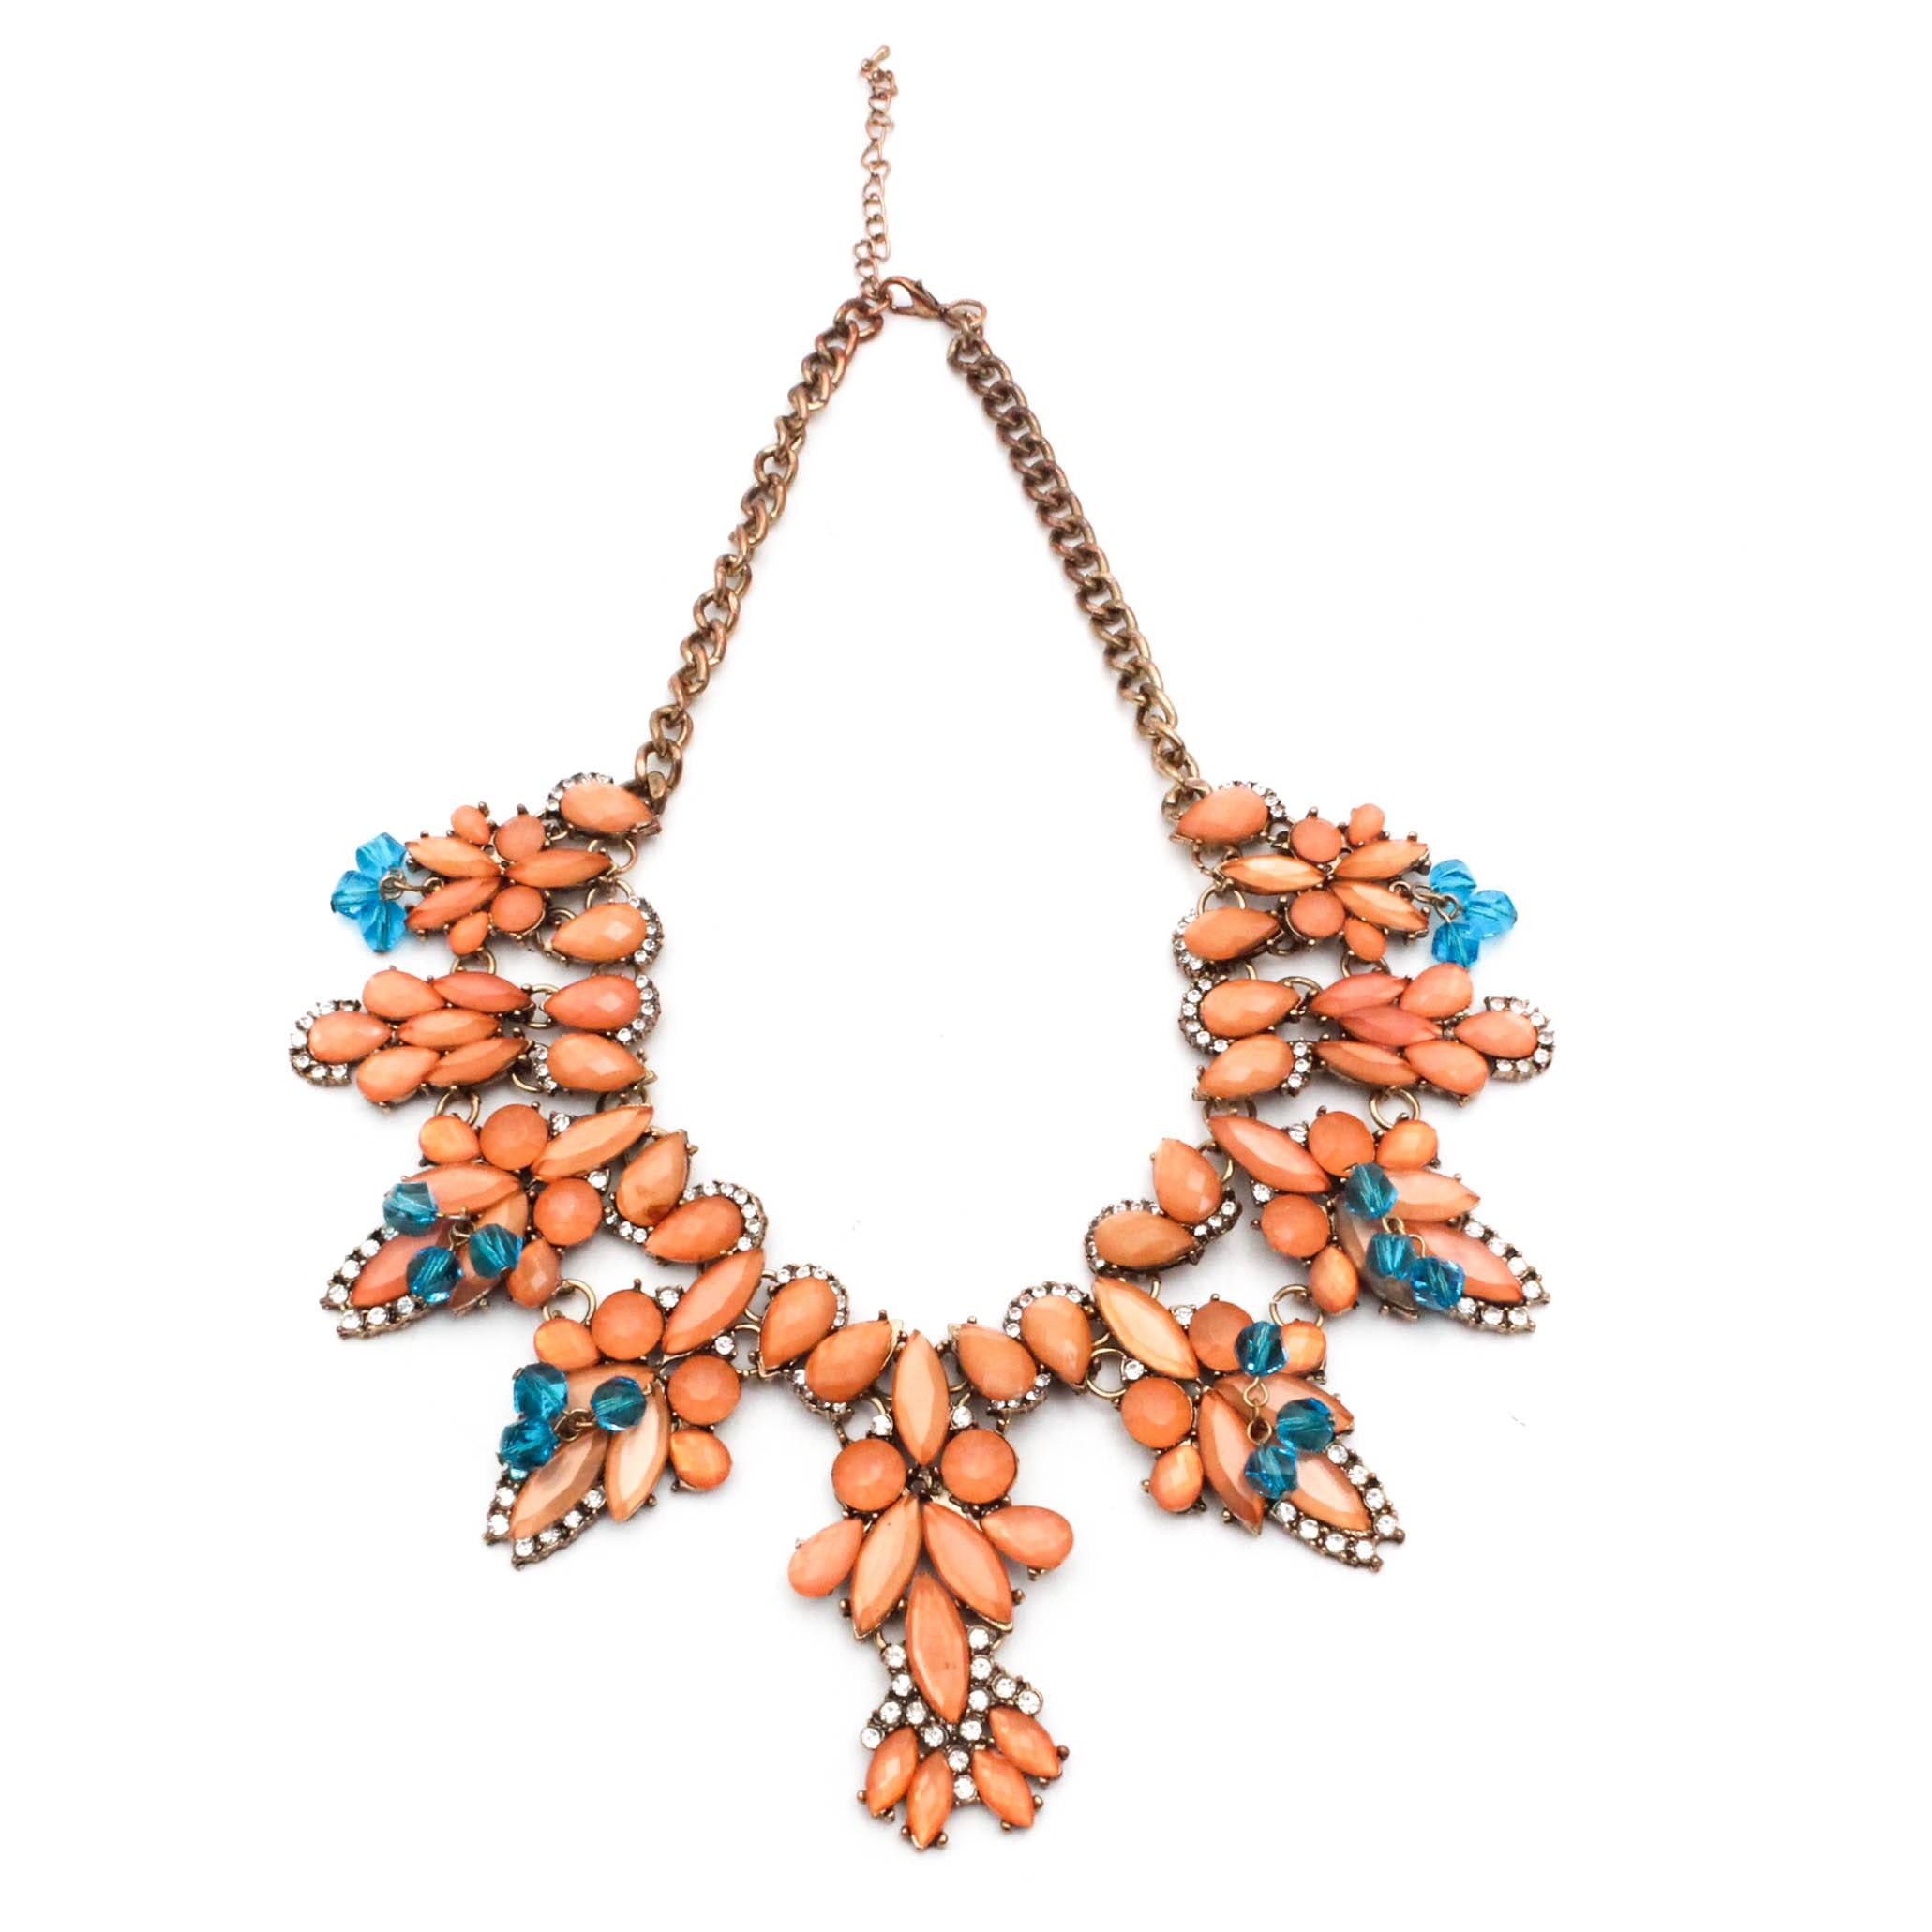 Rhinestone and Crystal Statement Necklace